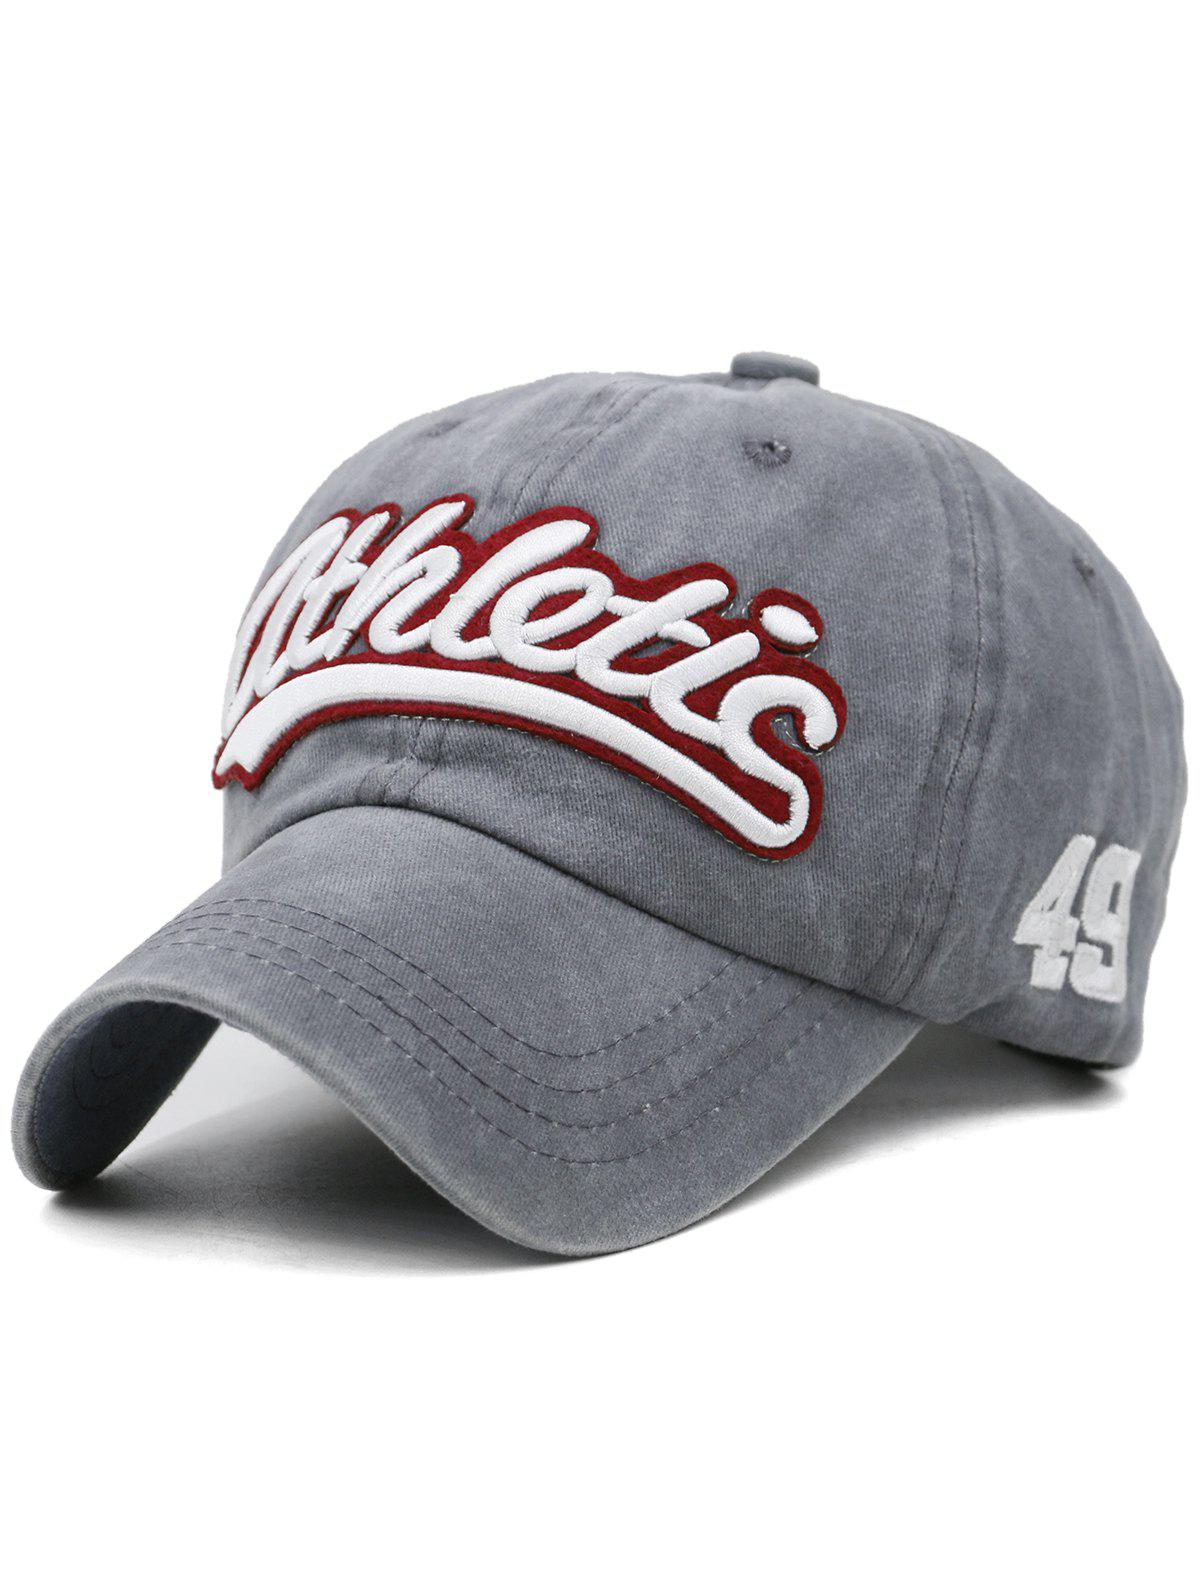 Letter Embroidered Washed Dyed Sport Hat - GRAY